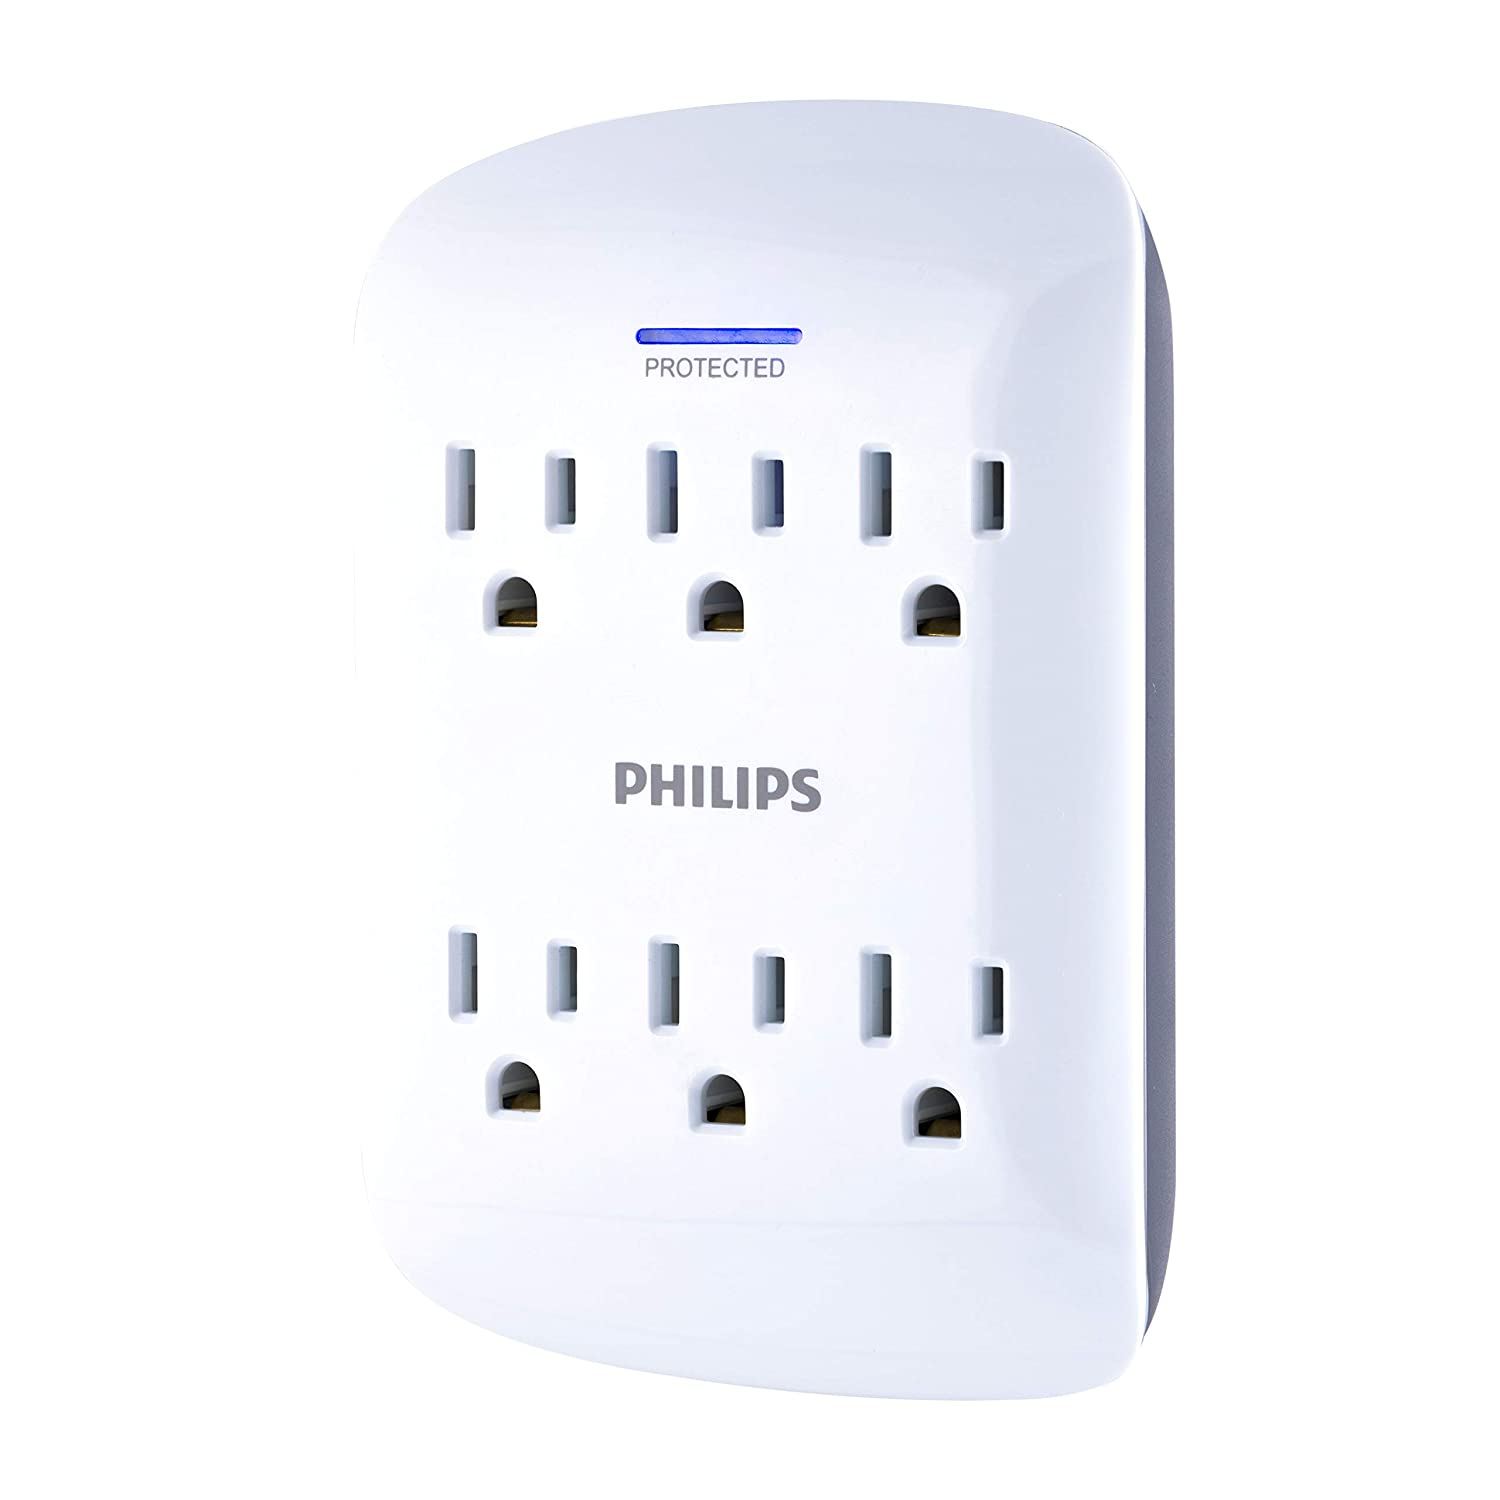 Philips 6 Outlet Surge Protector Tap, 900 Joules, Space Saving Design, Protection Indicator Led Light, Gray & White, Spp3461 Wa/37 by Philips